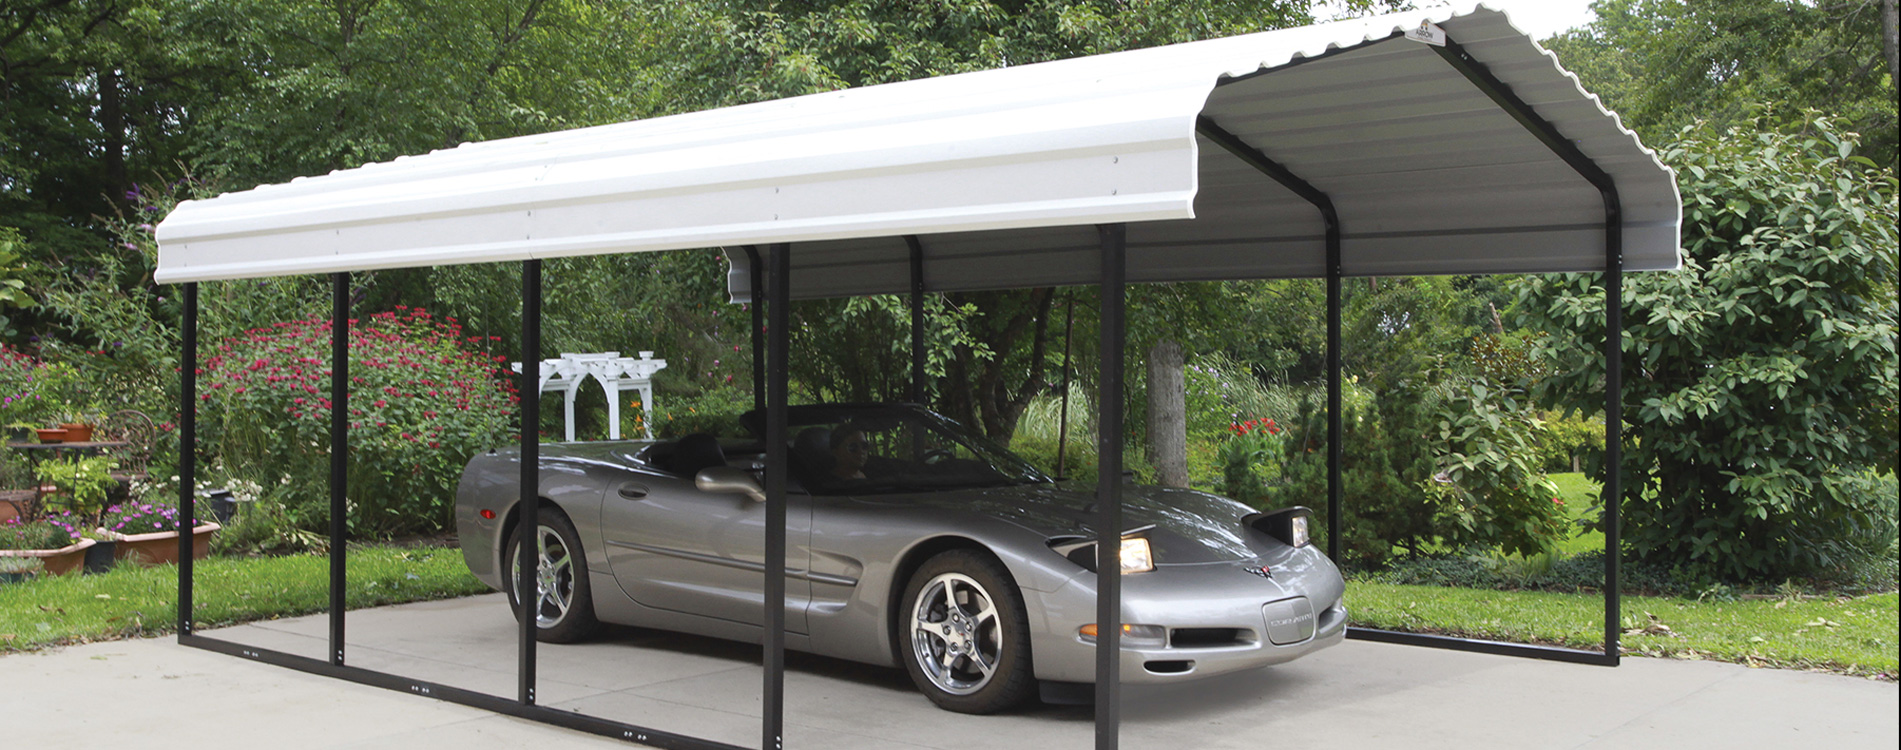 Temporary Garages For Large Trucks : Shelters of new england portable garages carports and